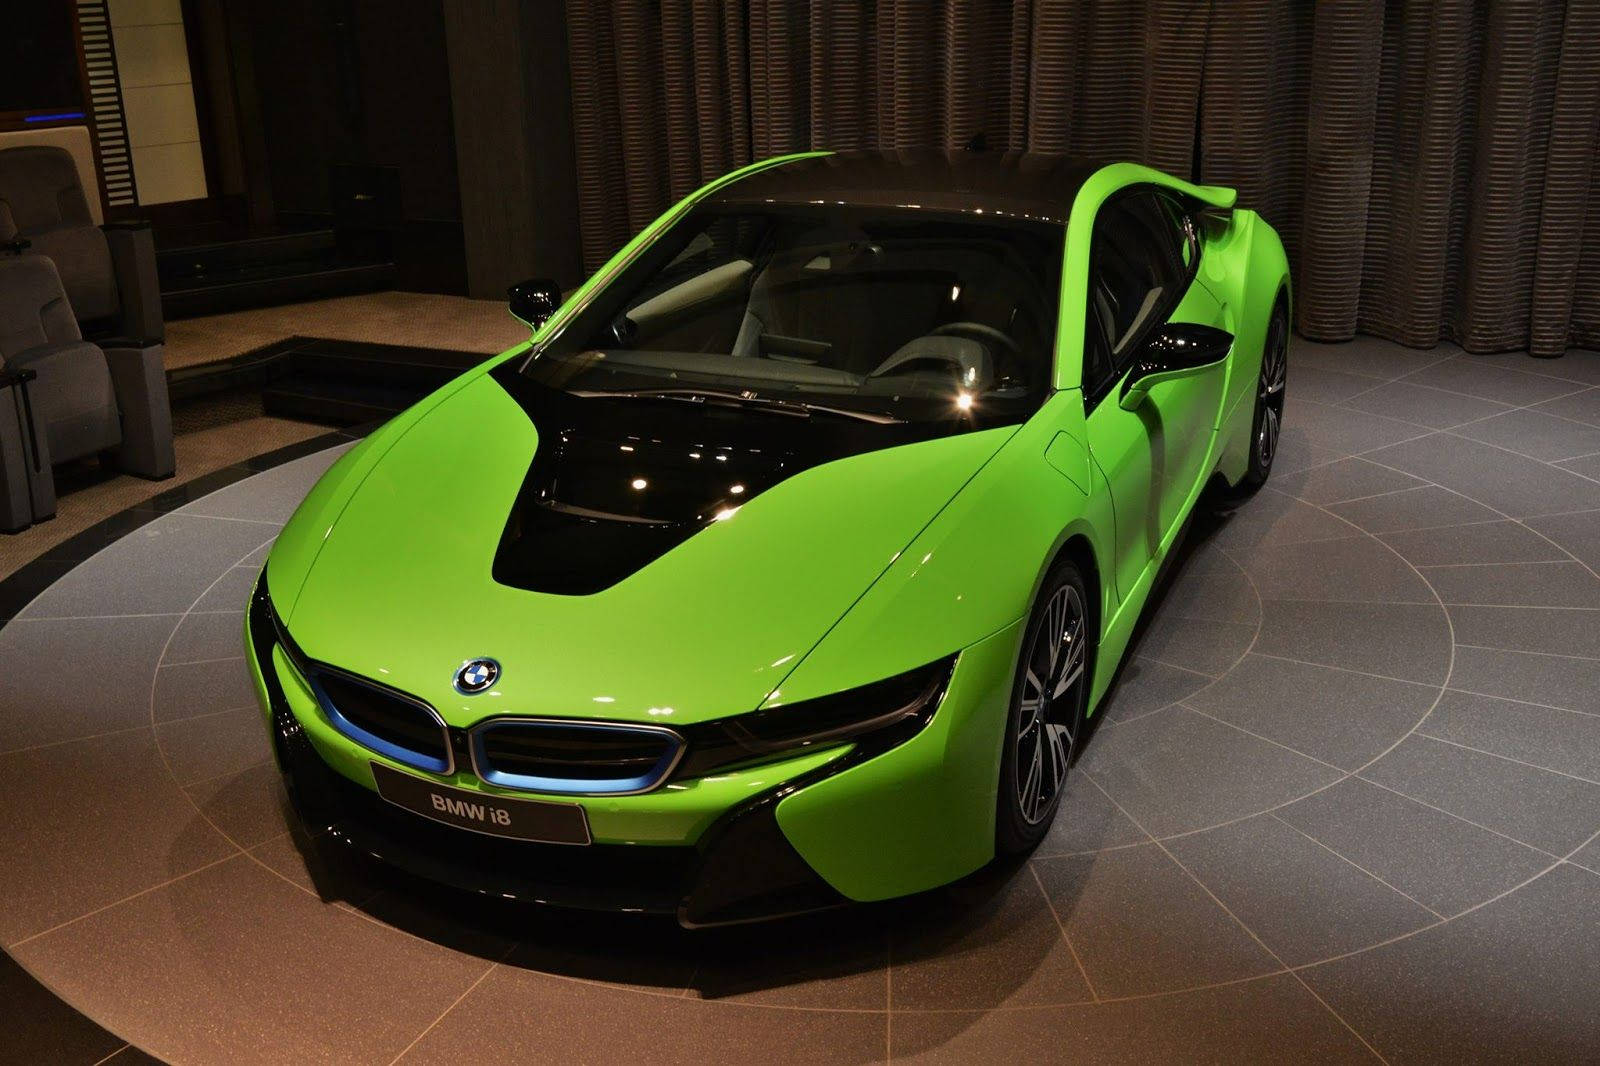 Superb The 2016 BMW I8 Lime Green Sports Car. This Would Be A Pretty Good Option  For That Sunday Drive Around Town.